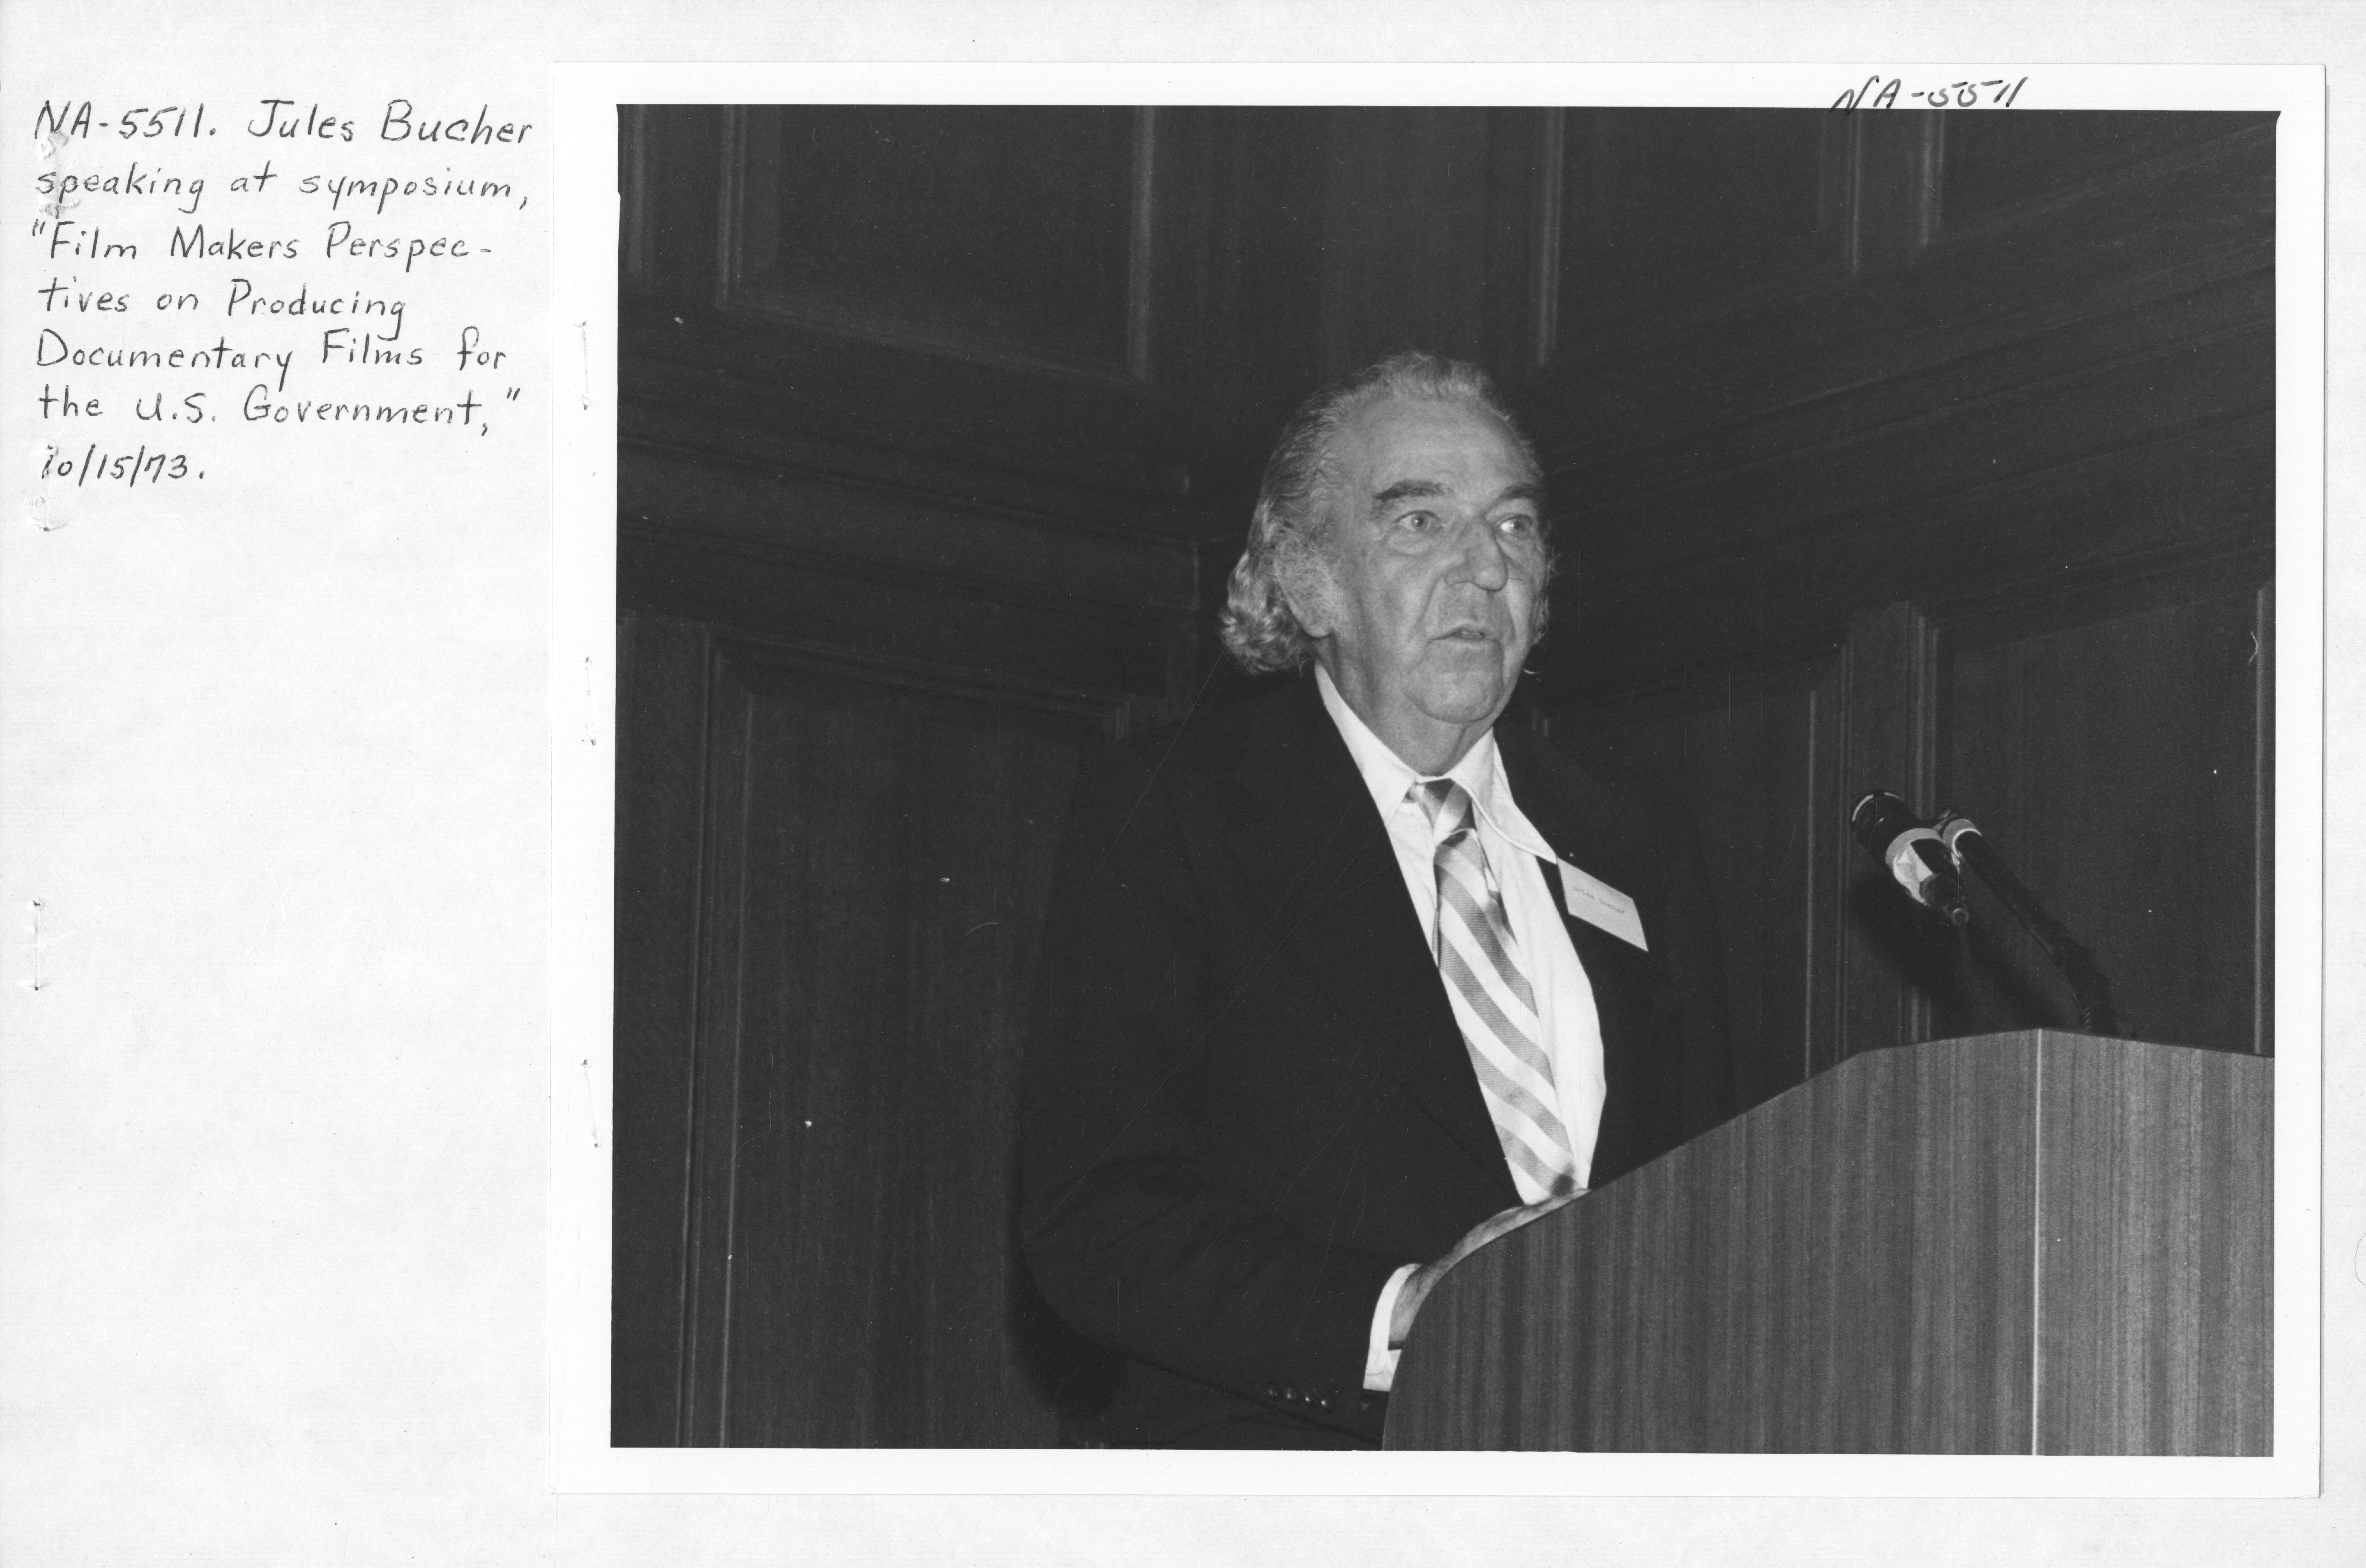 Photograph of Jules Bucher Speaking at the National Archives Symposium on